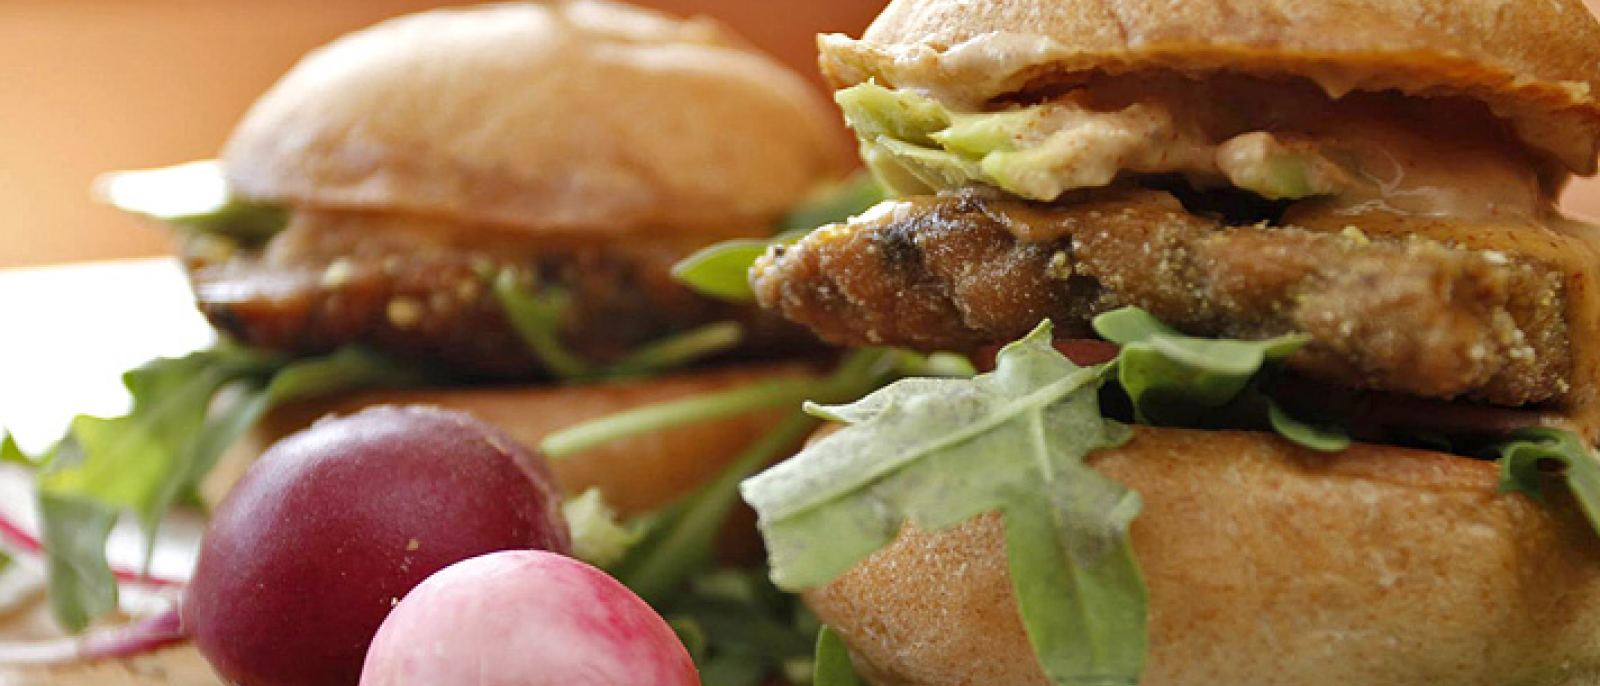 Suncafe Organic Cornmeal Tempeh Sliders